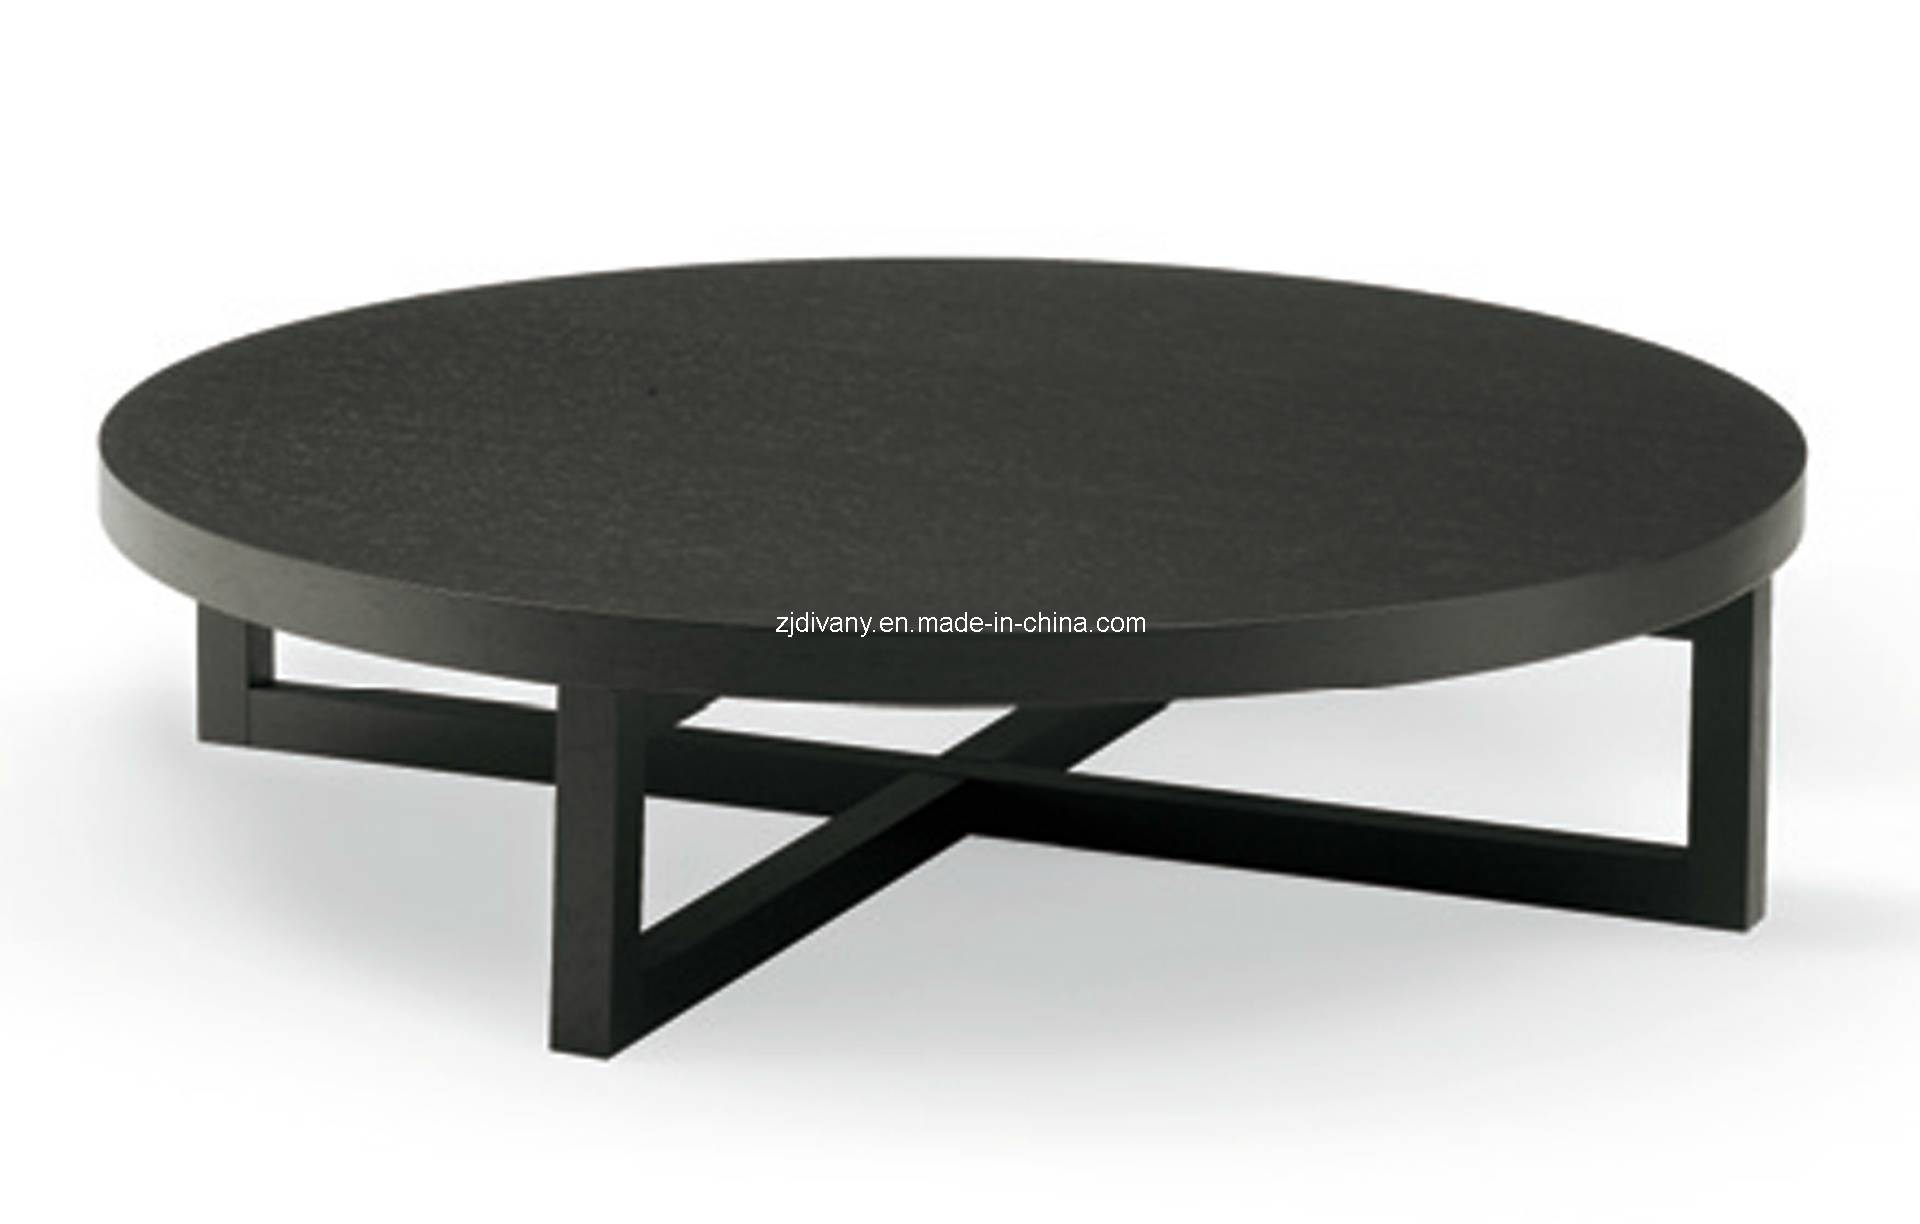 Small Circle Coffee Table. Small Round Coffee Table Ideas Image Of for Circle Coffee Tables (Image 26 of 30)